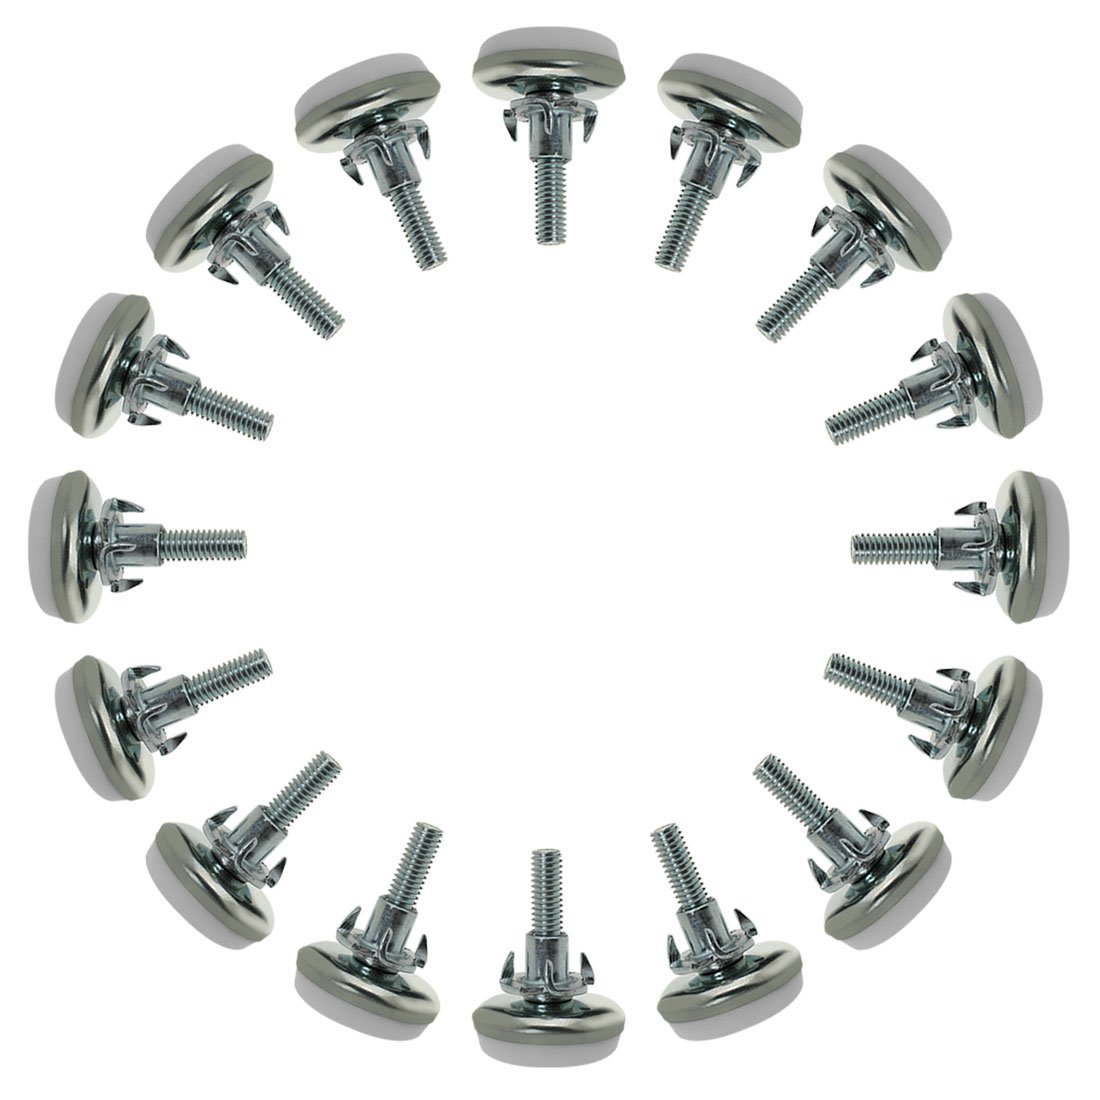 uxcell M6 x 20 x 30mm Screw on Furniture Glide Leveling Feet Adjustable Leveler with T-Nuts for Table Leg 16 Pack